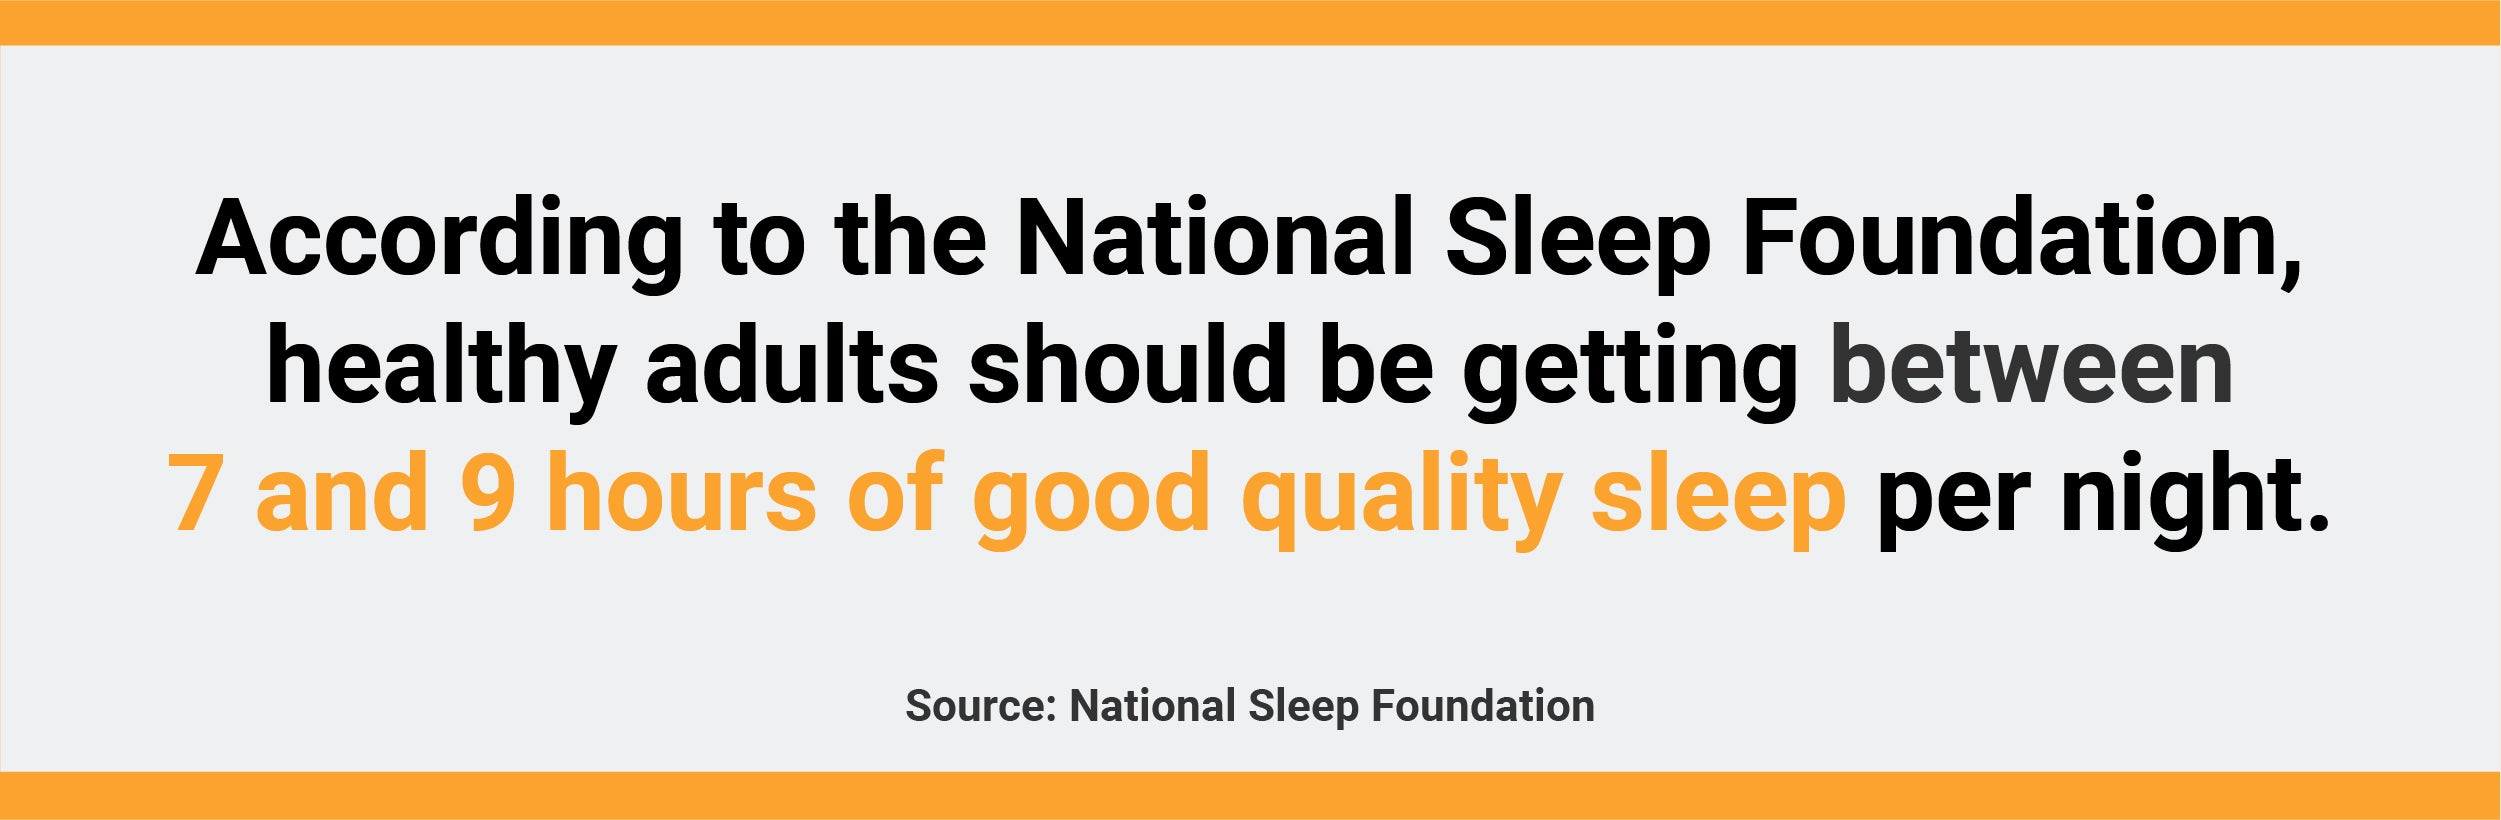 The national sleep foundation recommends between 7 and 9 hours of sleep each night.